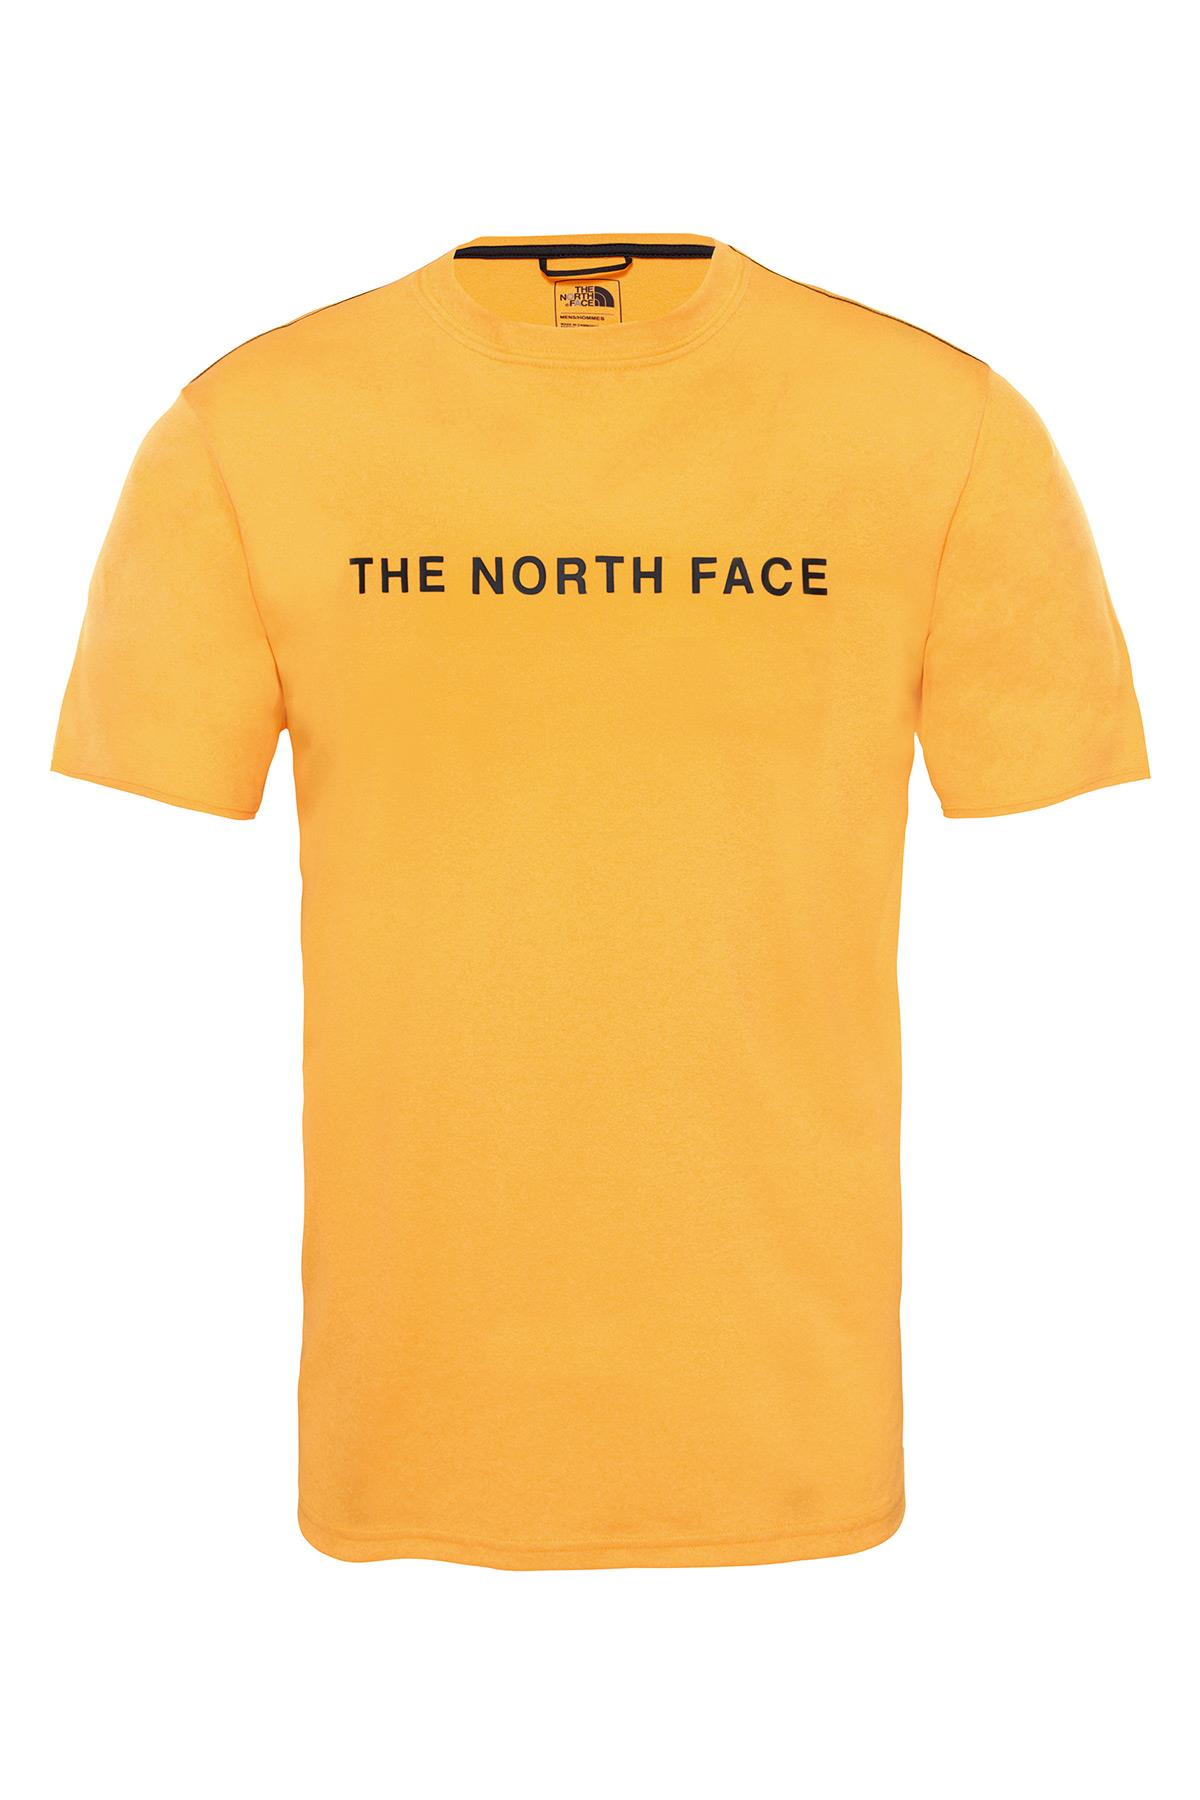 The Northface Erkek Train N Logo S/S Tee - Eu T93Uwvj0F Tişört